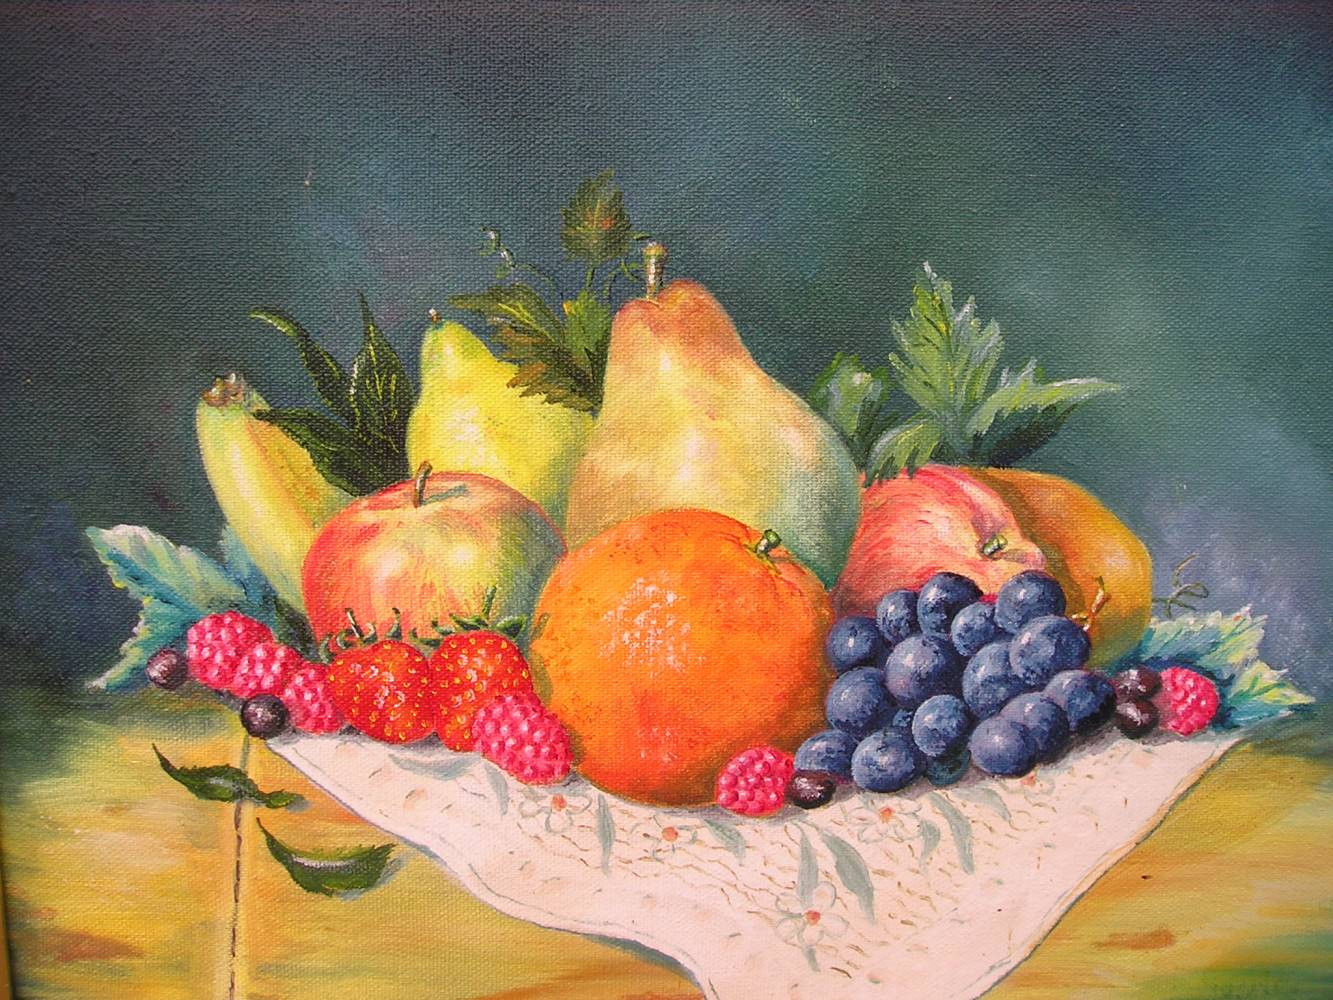 Coupe de fruits 2 jp viguier artiste peintre - Jeux ou on coupe des fruits ...